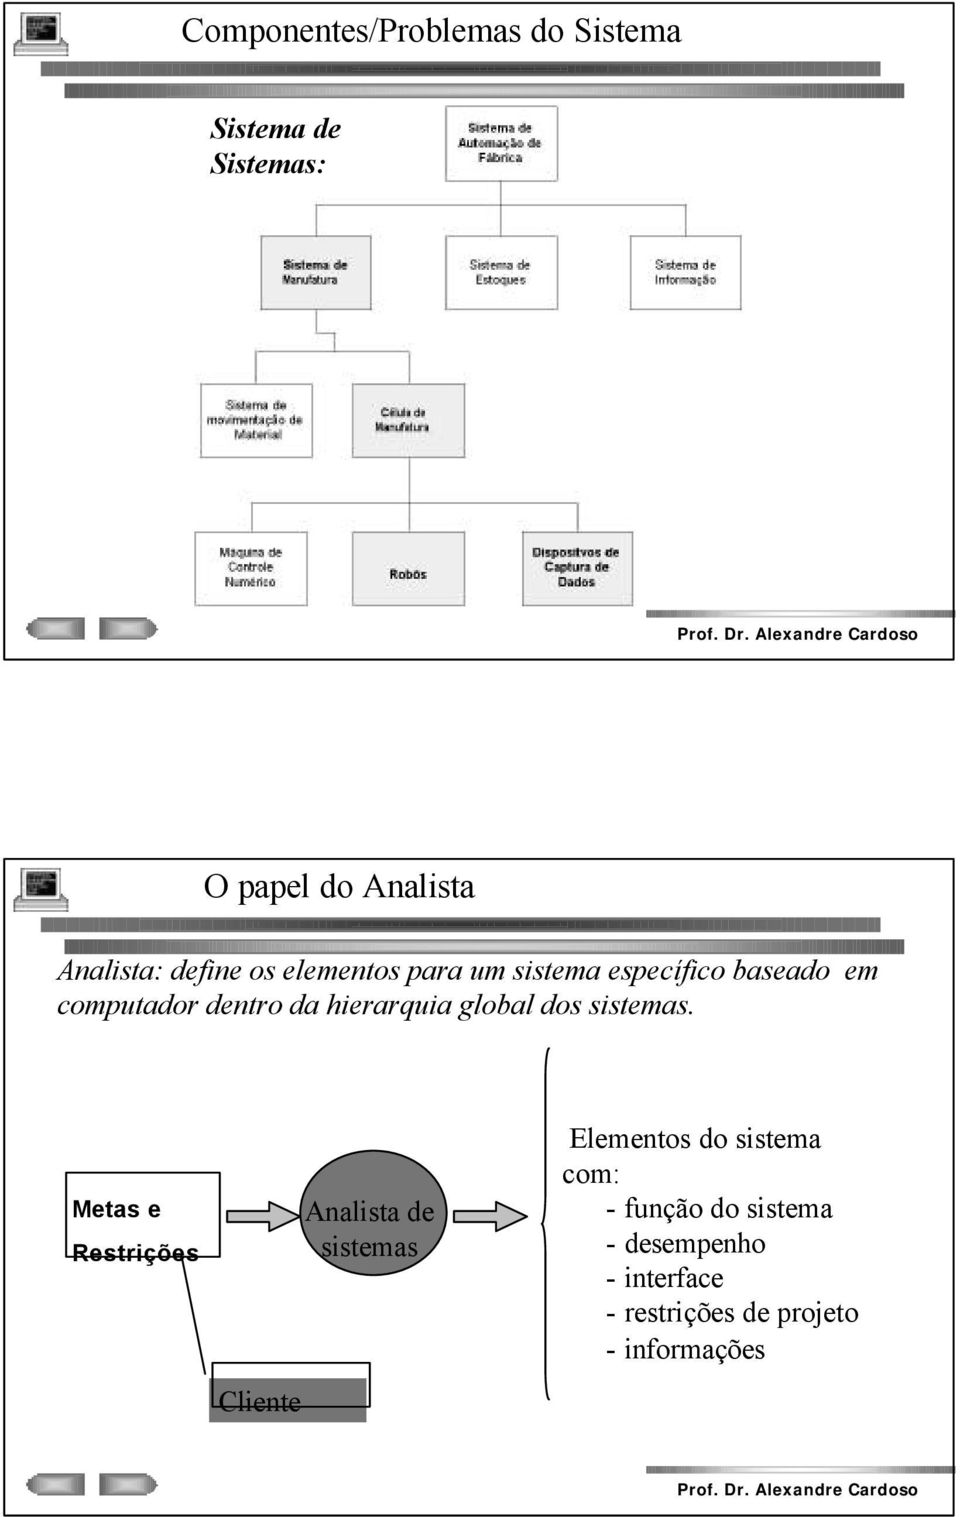 hierarquia global dos sistemas.